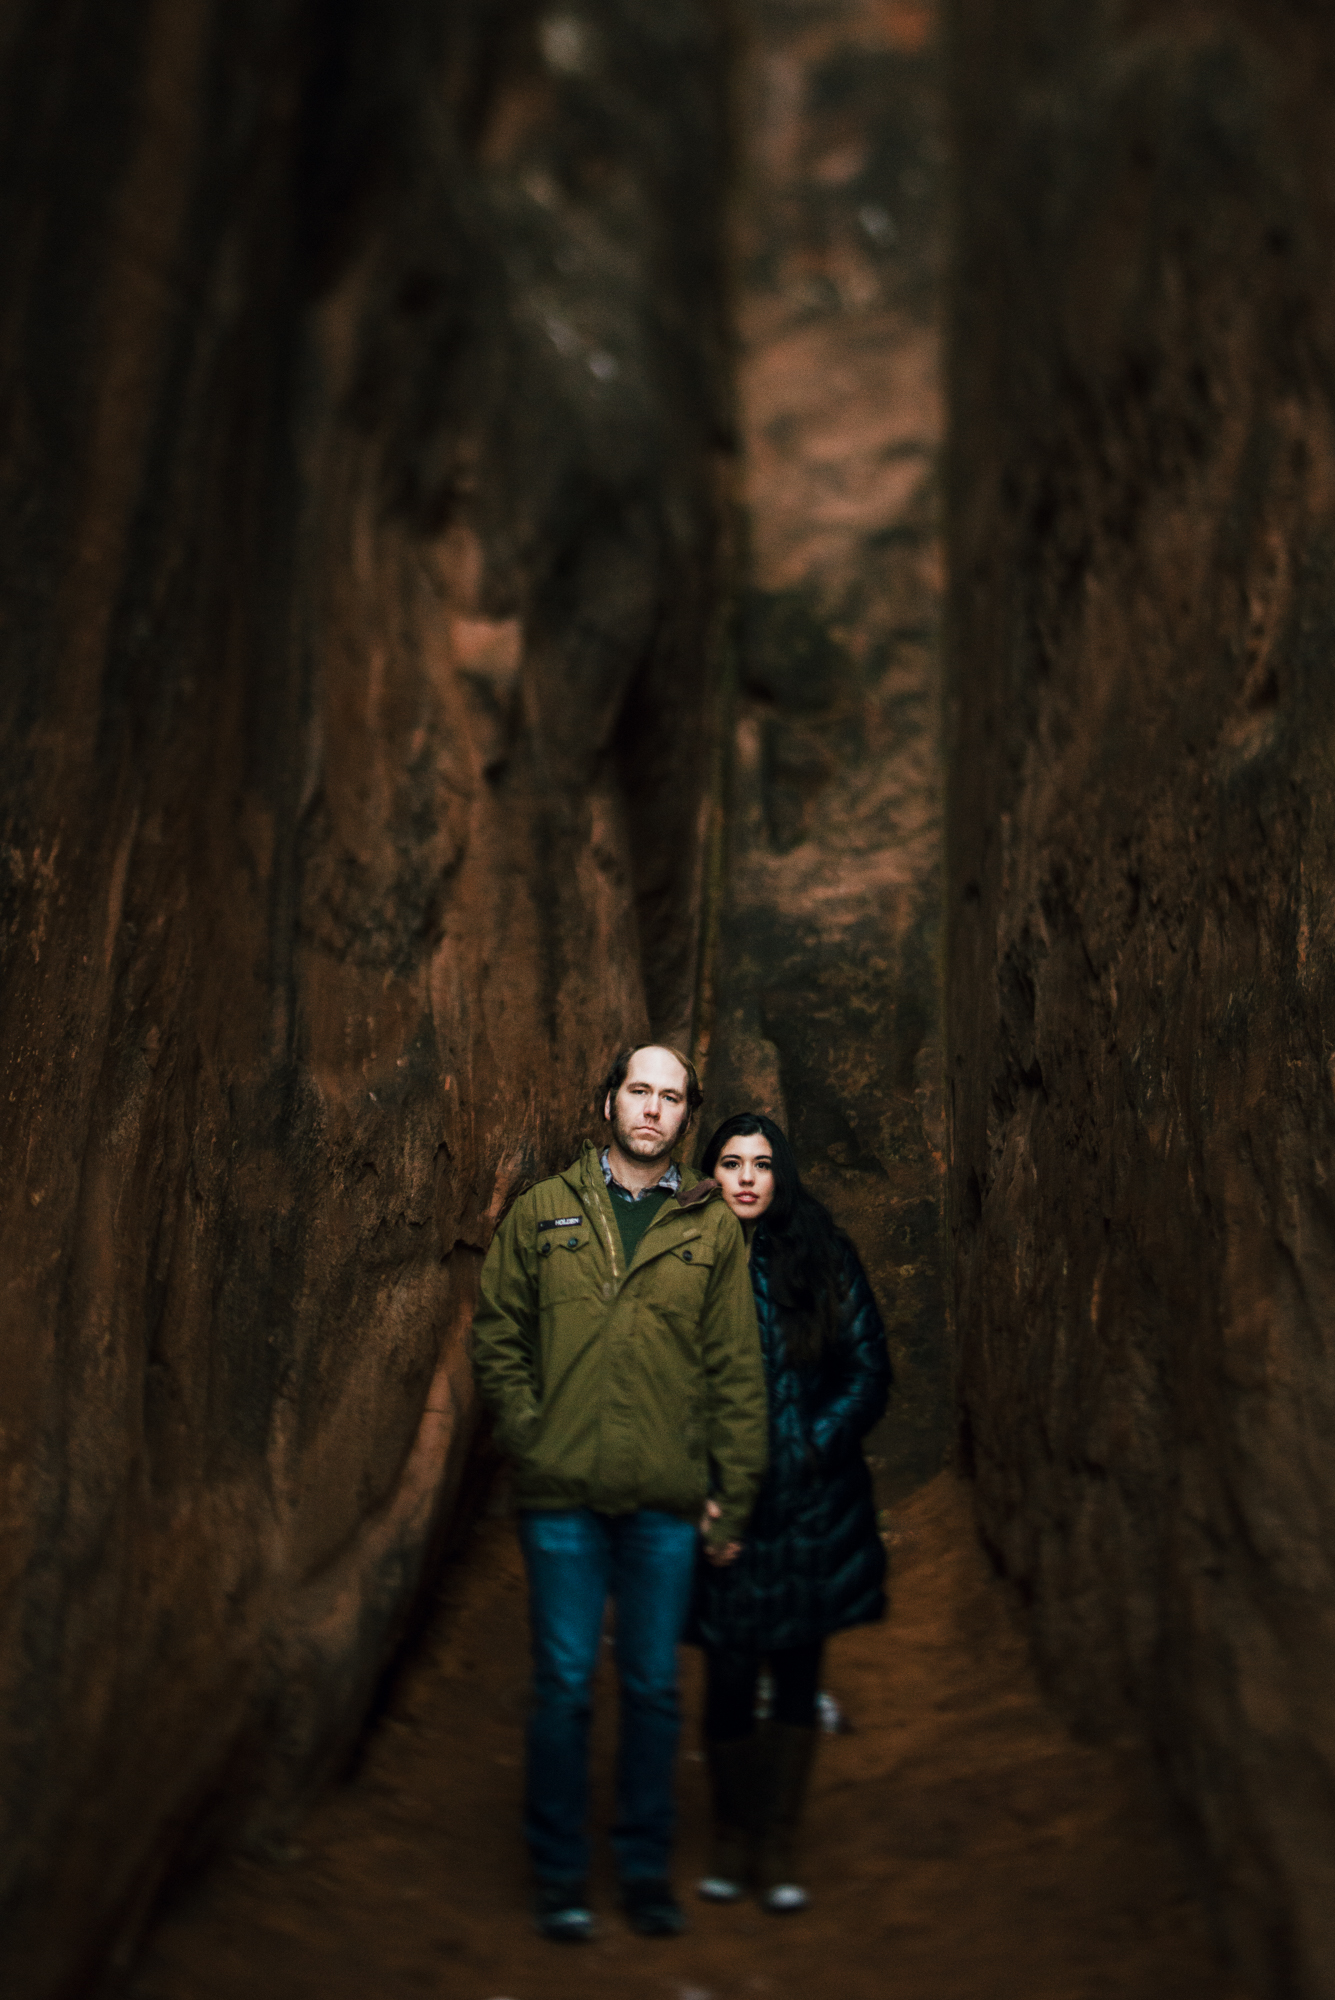 ©Isaiah & Taylor Photography - Arches National Park Adventure Engagement, Moab Utah-015.jpg